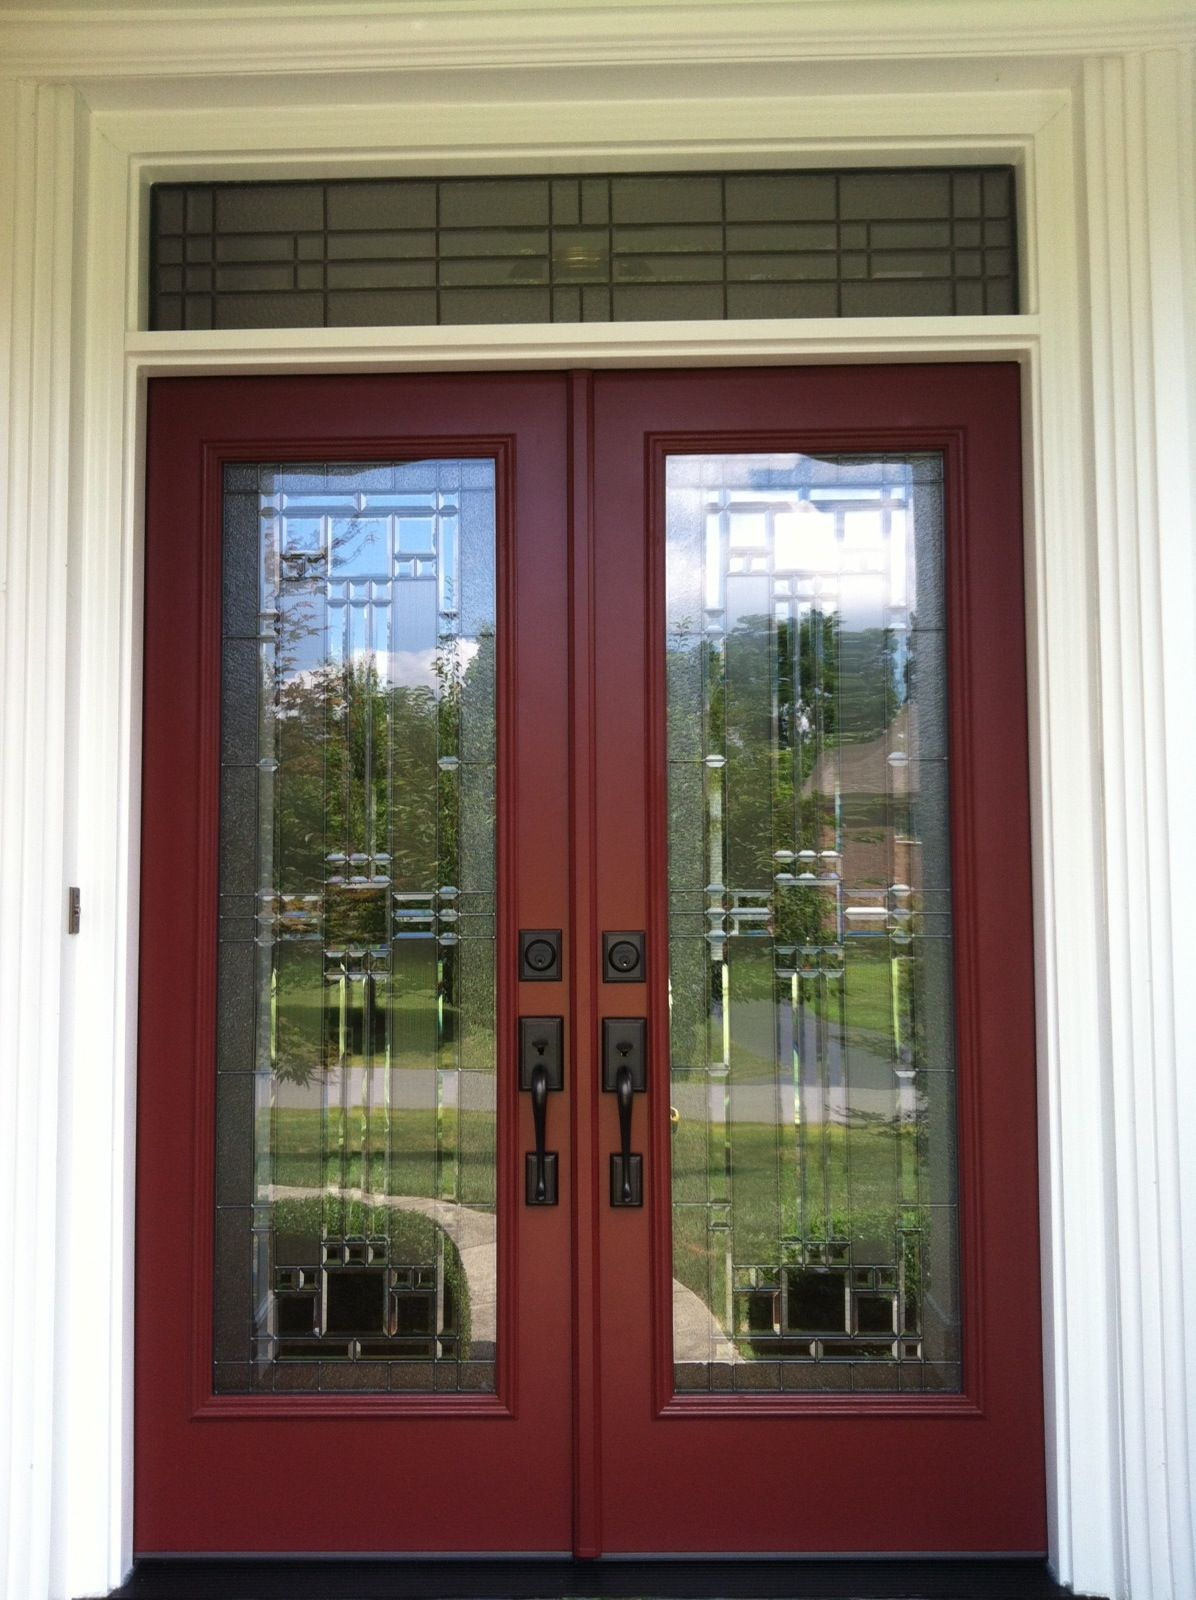 Storm Door pro via storm doors photos : Provia Signet french entry door system with full light decorative ...